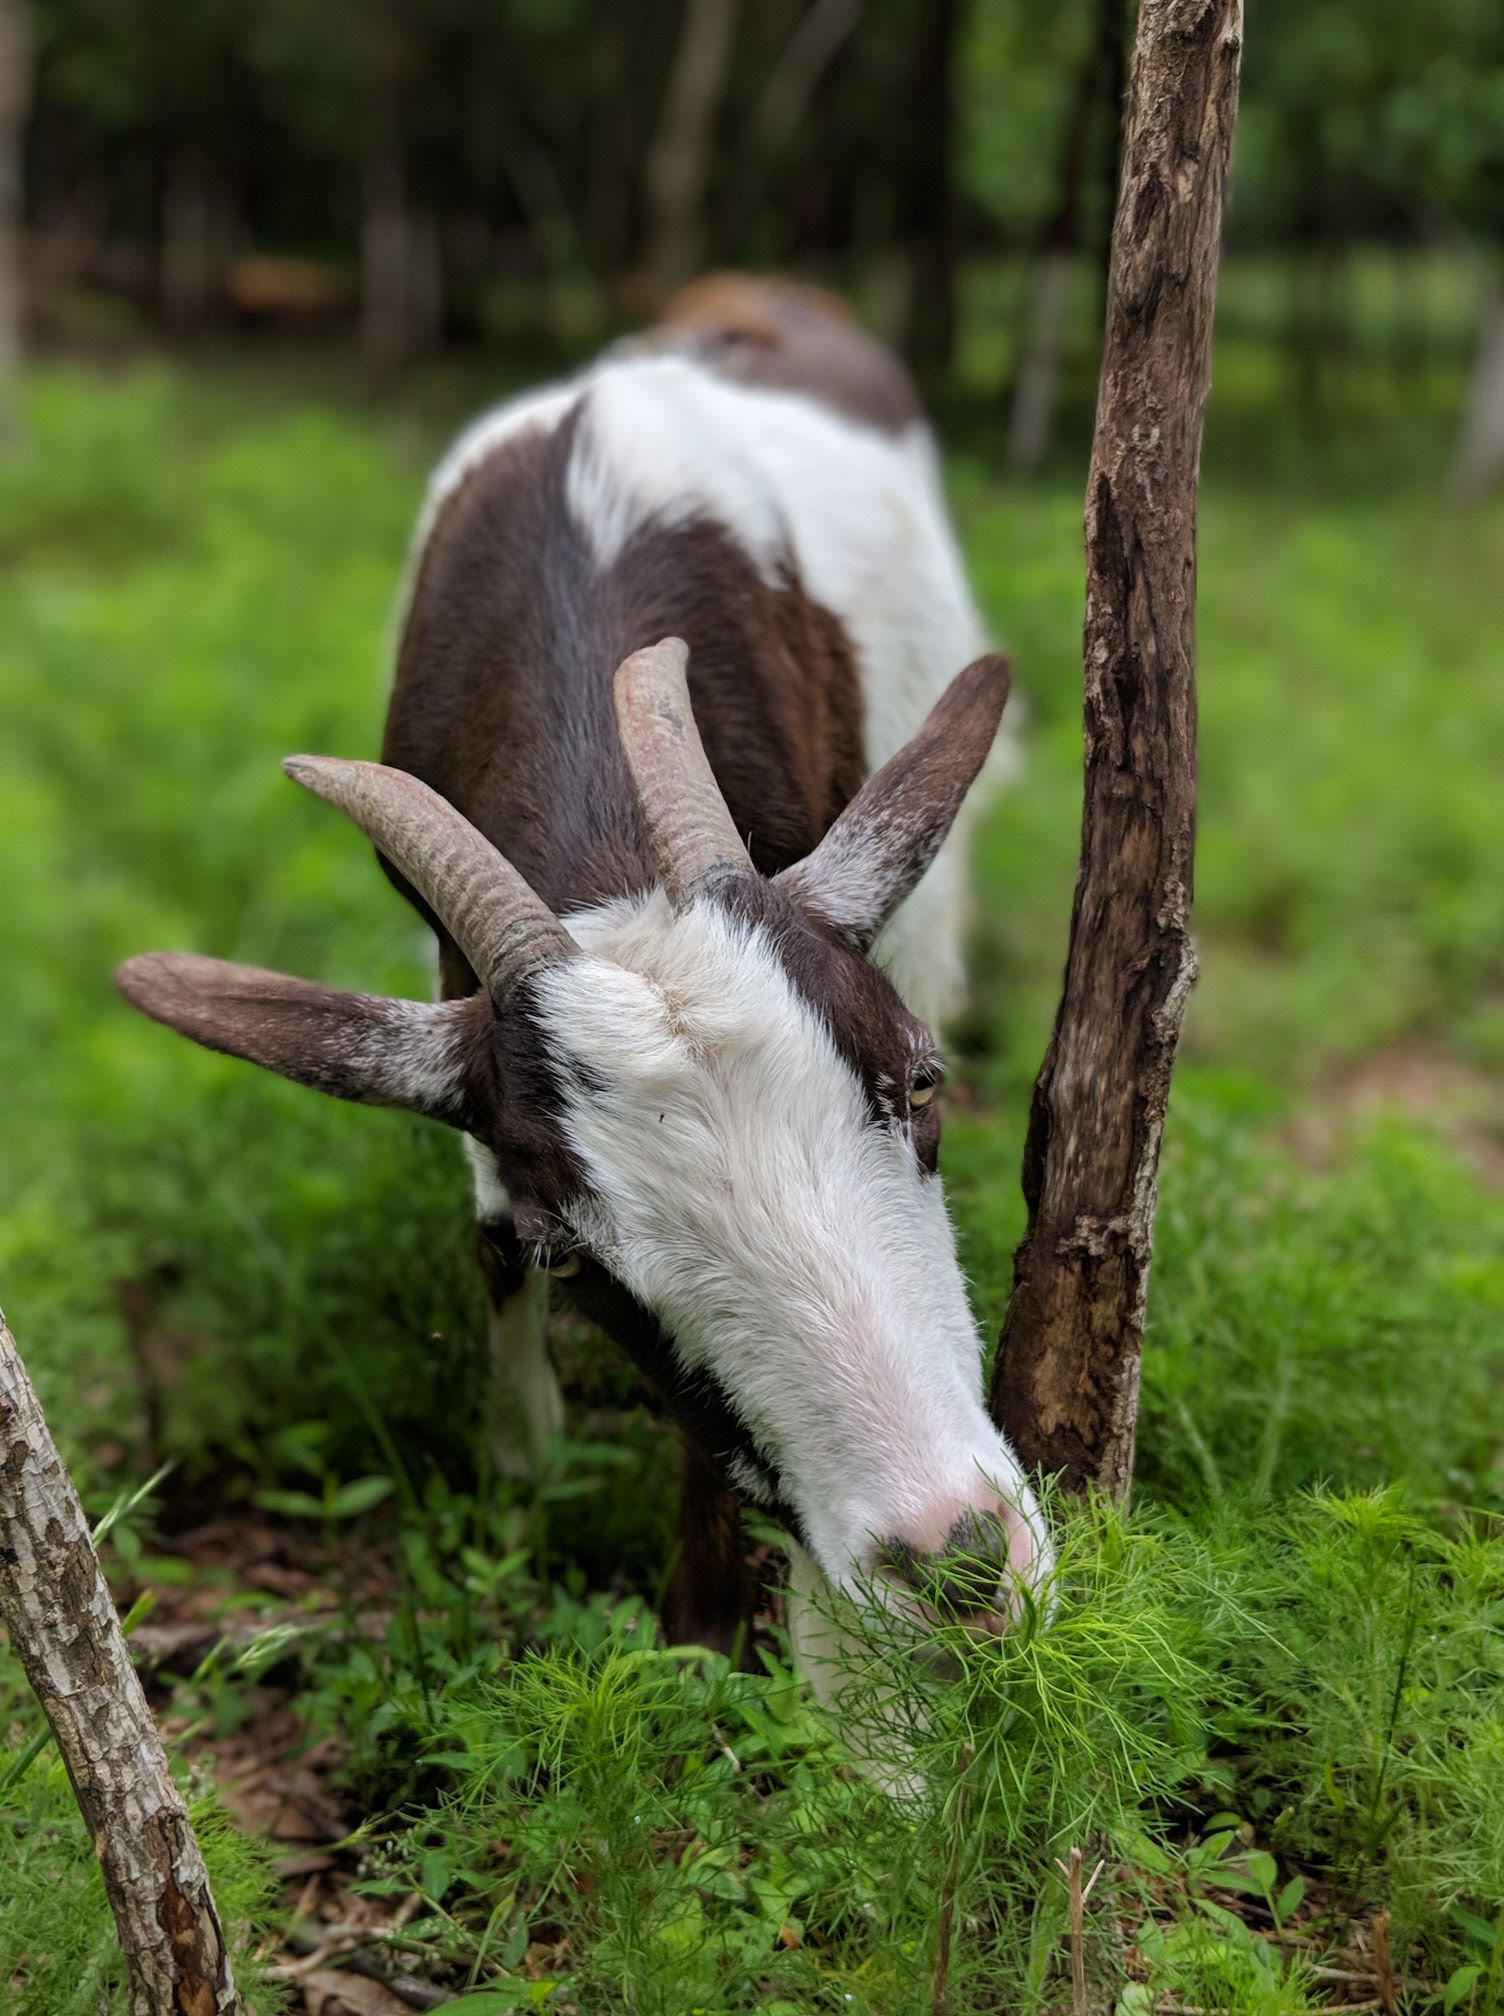 A brown a white goat eating grass